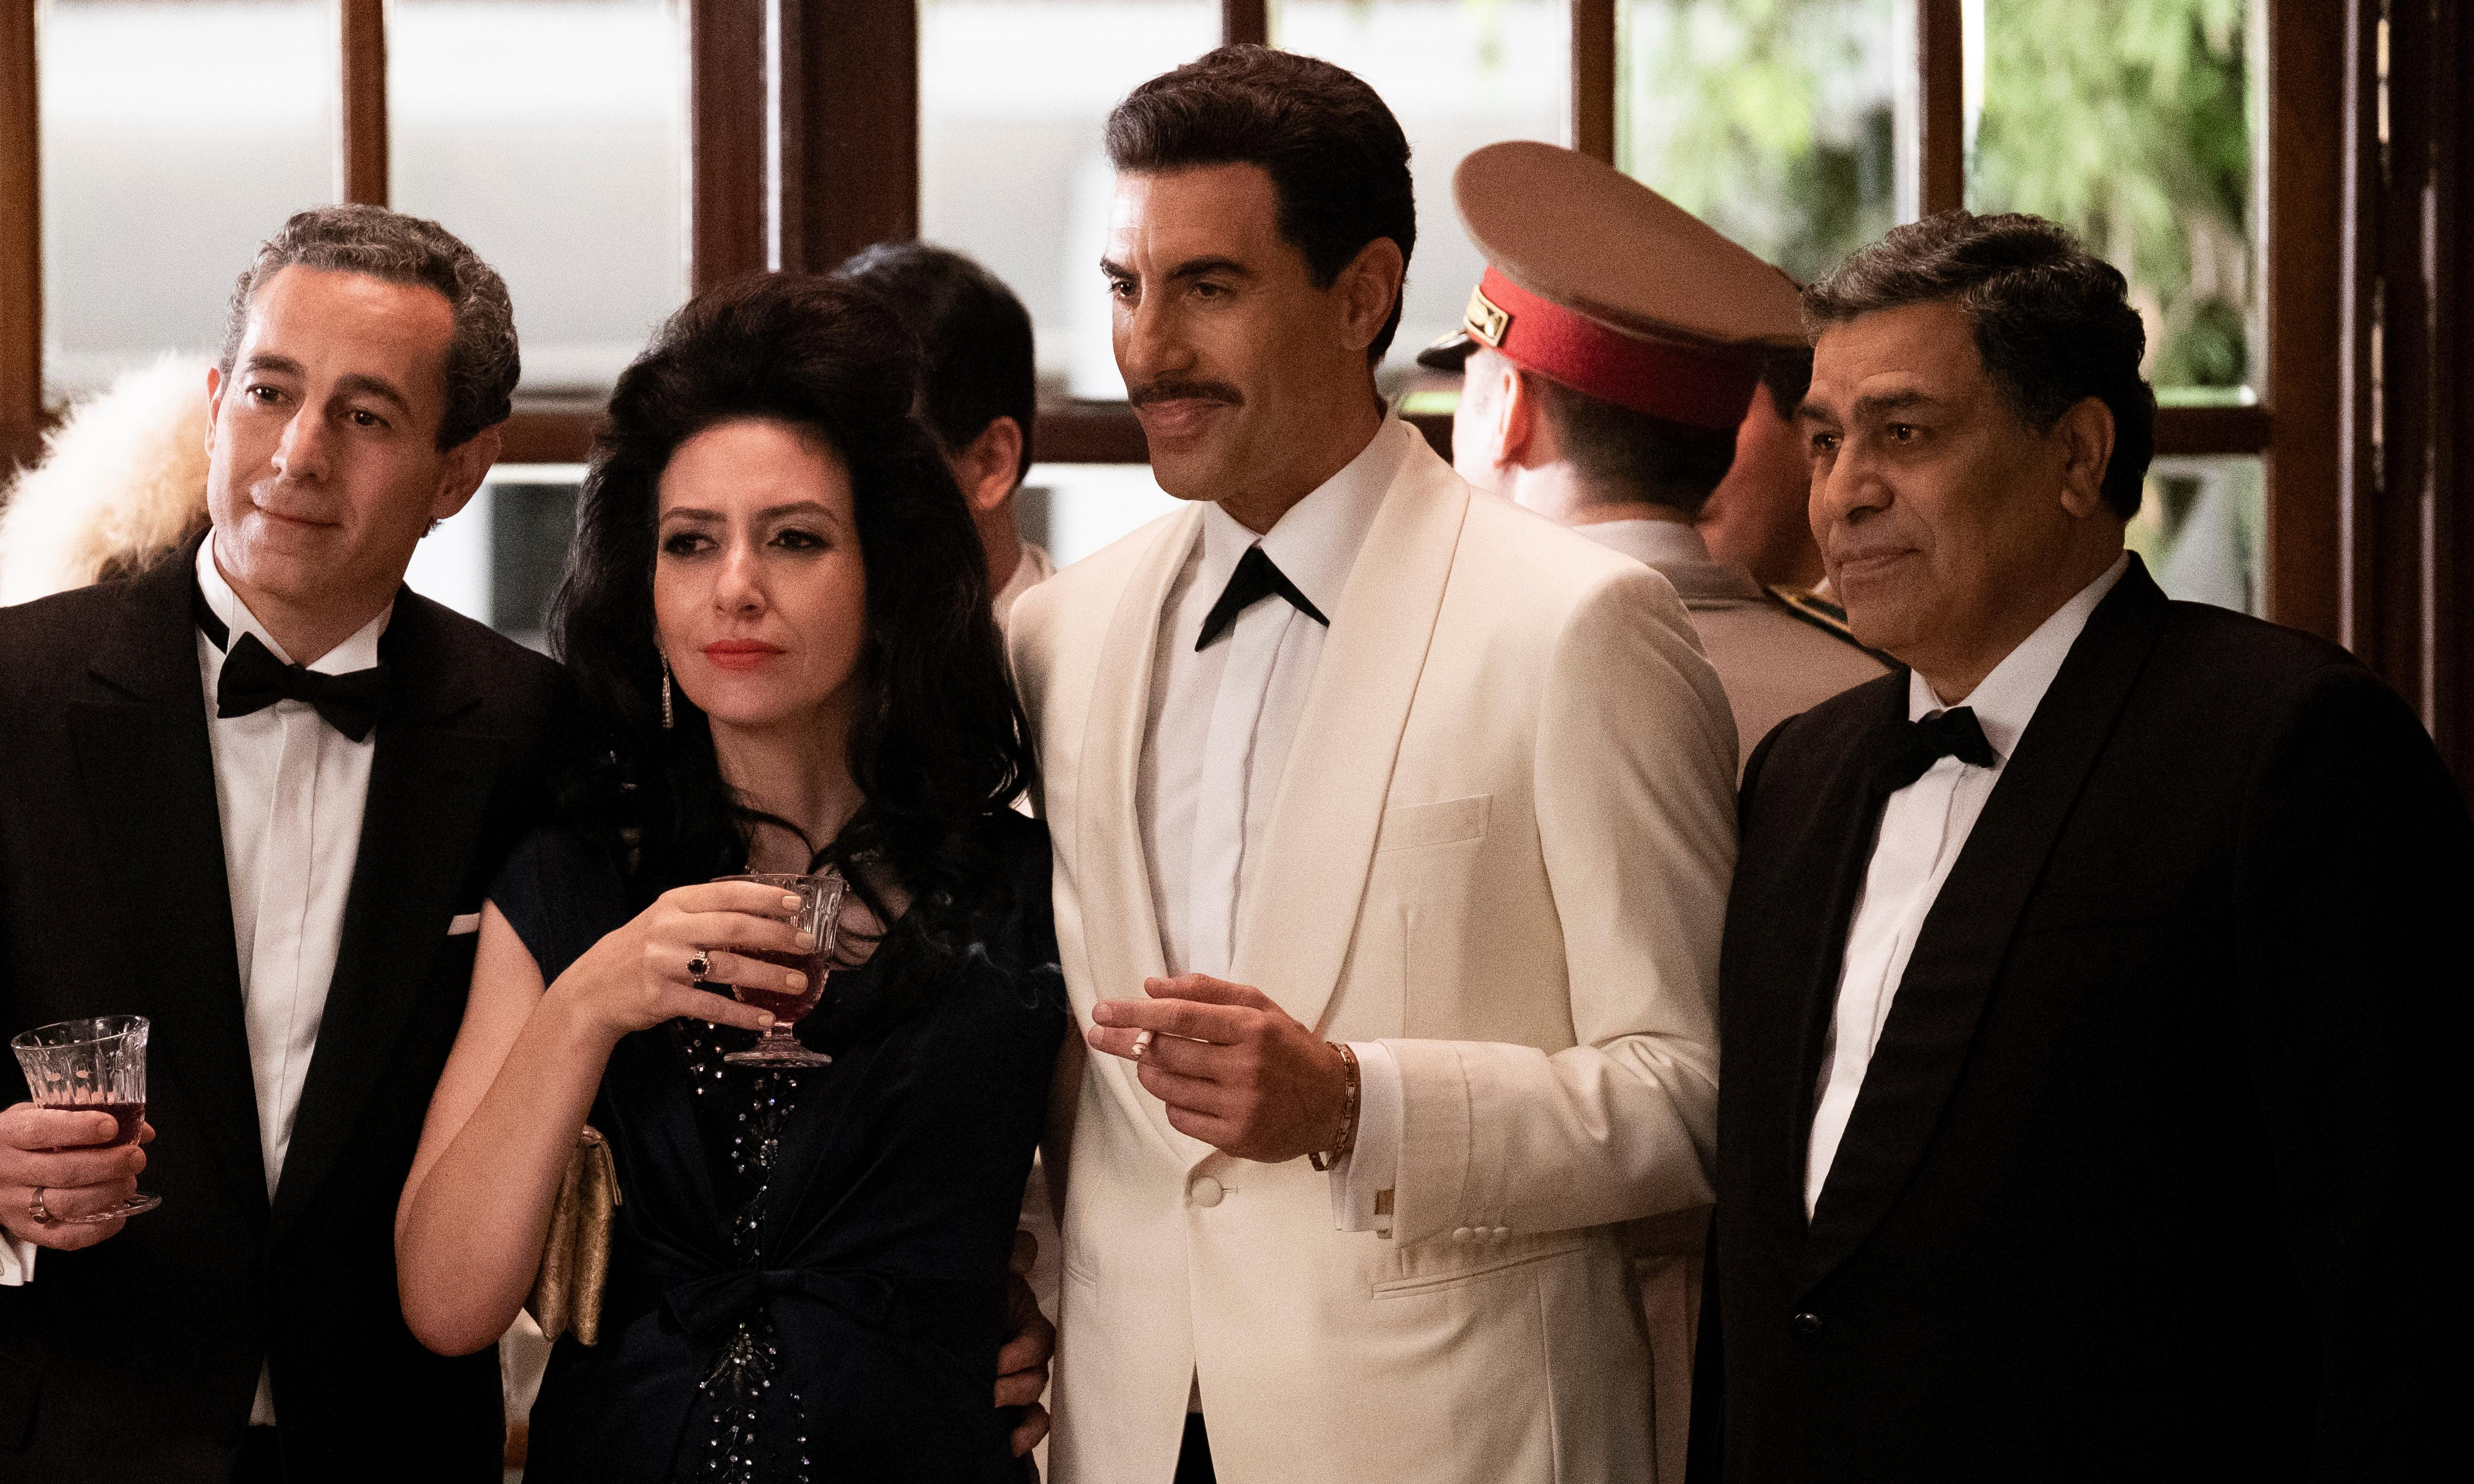 The Spy review – Sacha Baron Cohen goes undercover in middling Mossad drama